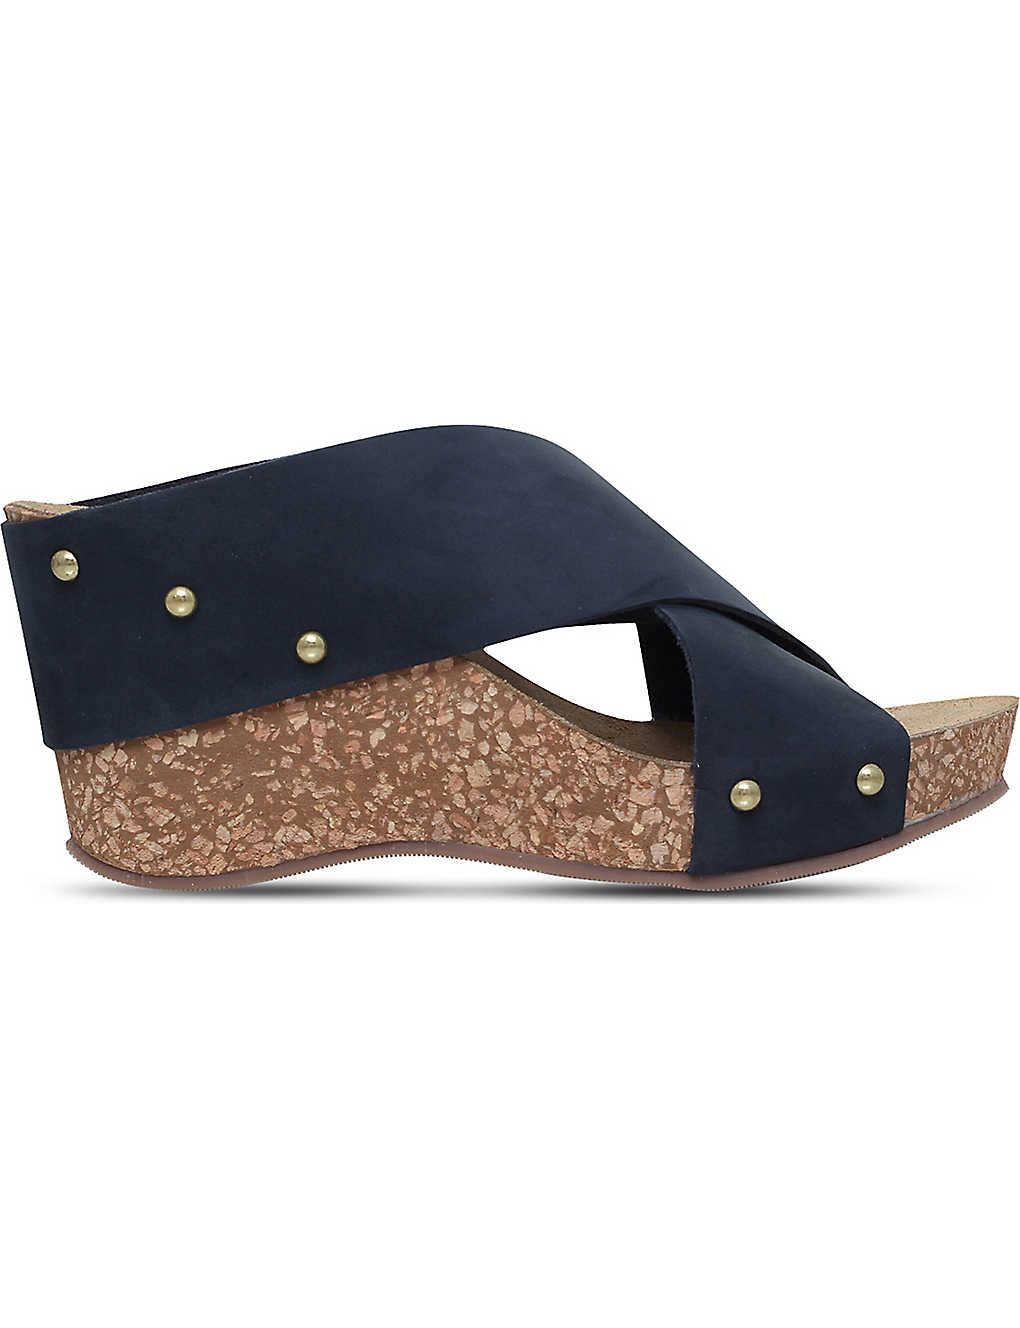 Carvela Sooty Comfort Sandals Leather Carvela JF1KTlc